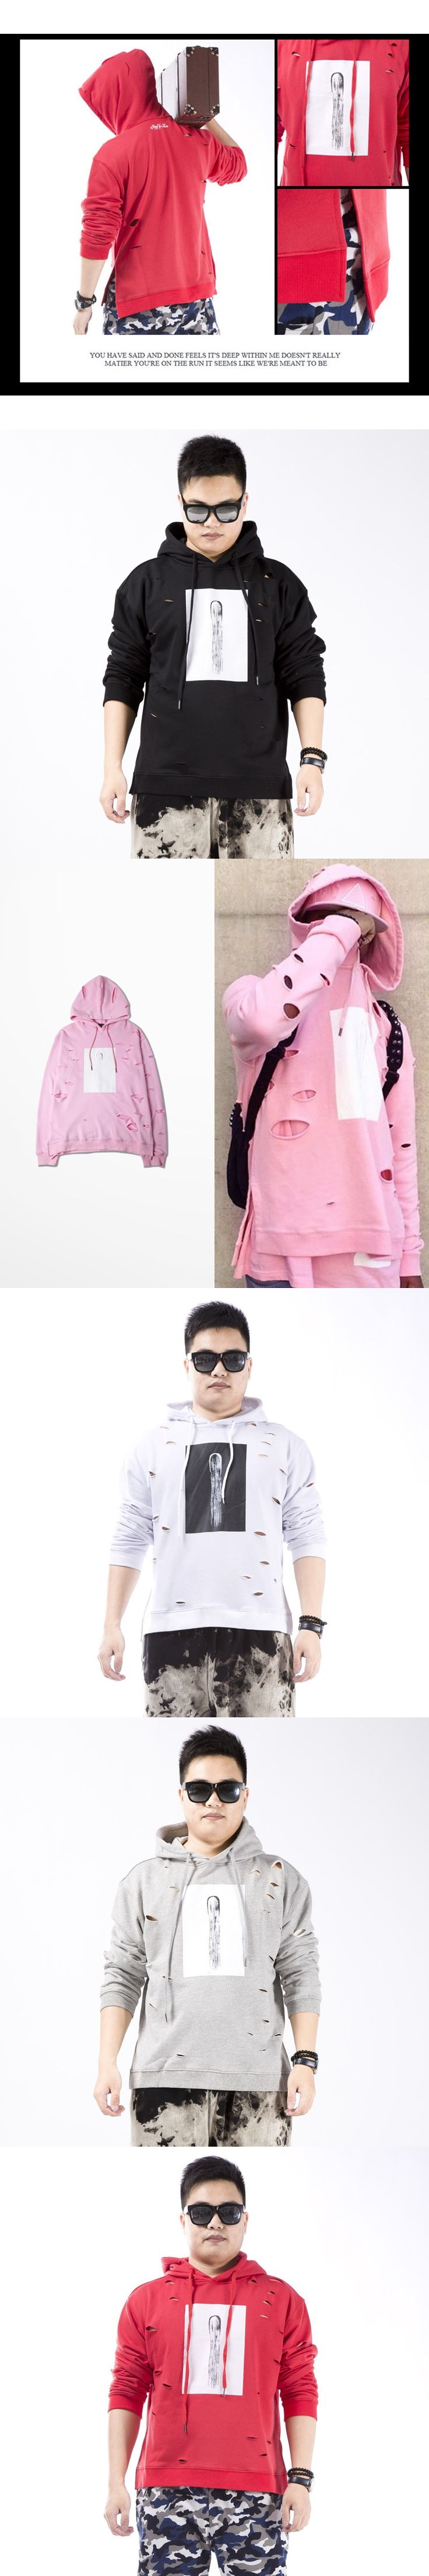 New Autumn Men Aad Women Ripped Hoodie Pink Black White Hole Loose Streetwear Ripped Hip Hop Punk Rap Couple Clothes Pullover